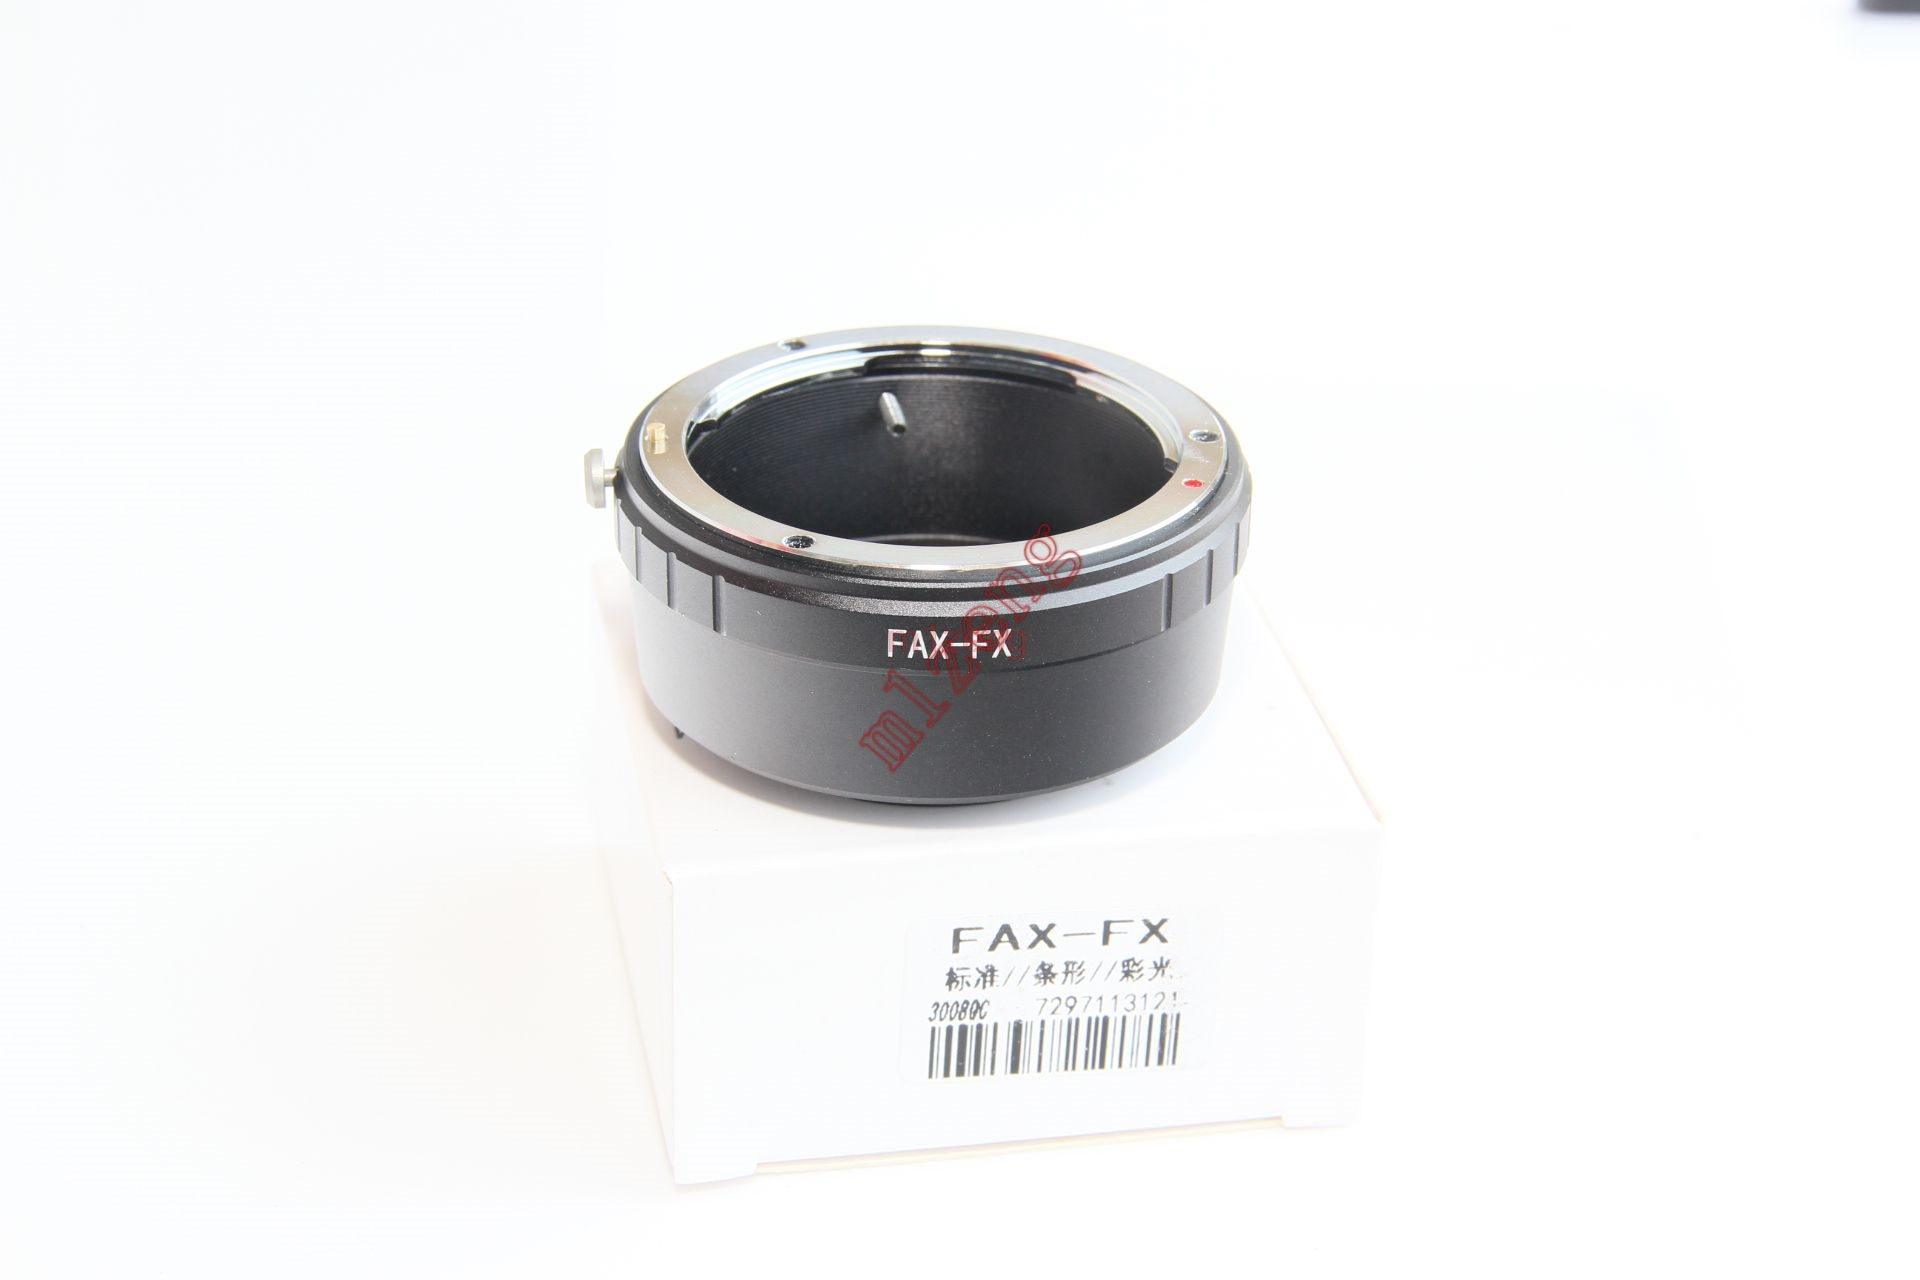 FAX fujica to fx lens adapter ring for Fujifilm fuji X X-E2/X-E1/X-Pro1/X-M1/X-A3/X-A5/X-T1 xt2 xt10 xt20 x100f xpro2 cameraFAX fujica to fx lens adapter ring for Fujifilm fuji X X-E2/X-E1/X-Pro1/X-M1/X-A3/X-A5/X-T1 xt2 xt10 xt20 x100f xpro2 camera